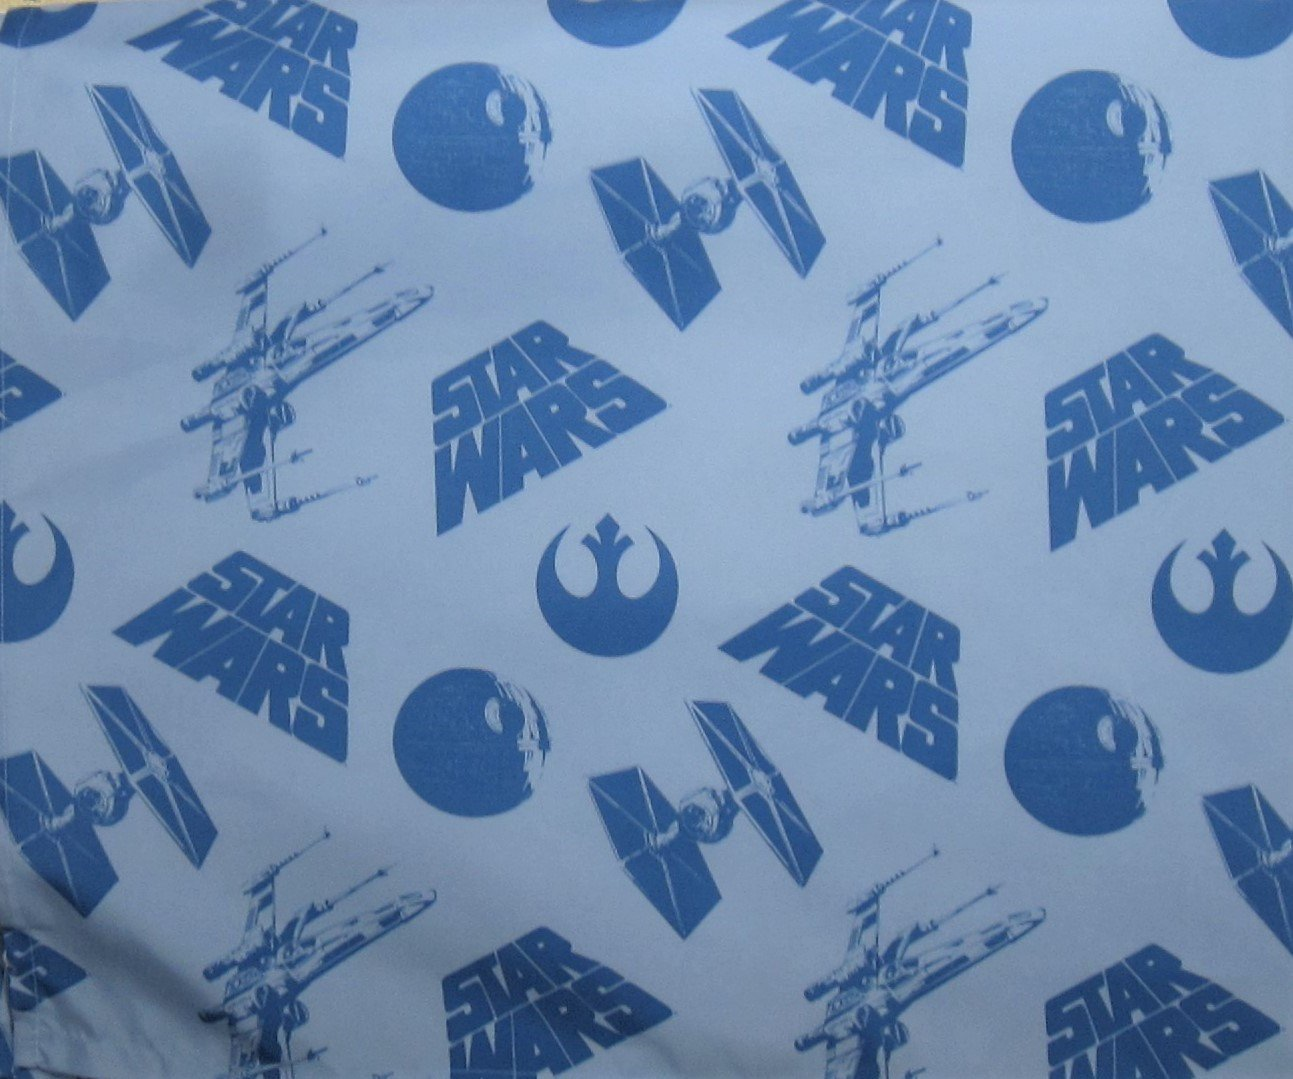 Star Wars Space Logo 100% Polyester (FLAT SHEET ONLY) Size TWIN Boys Girls Kids Bedding